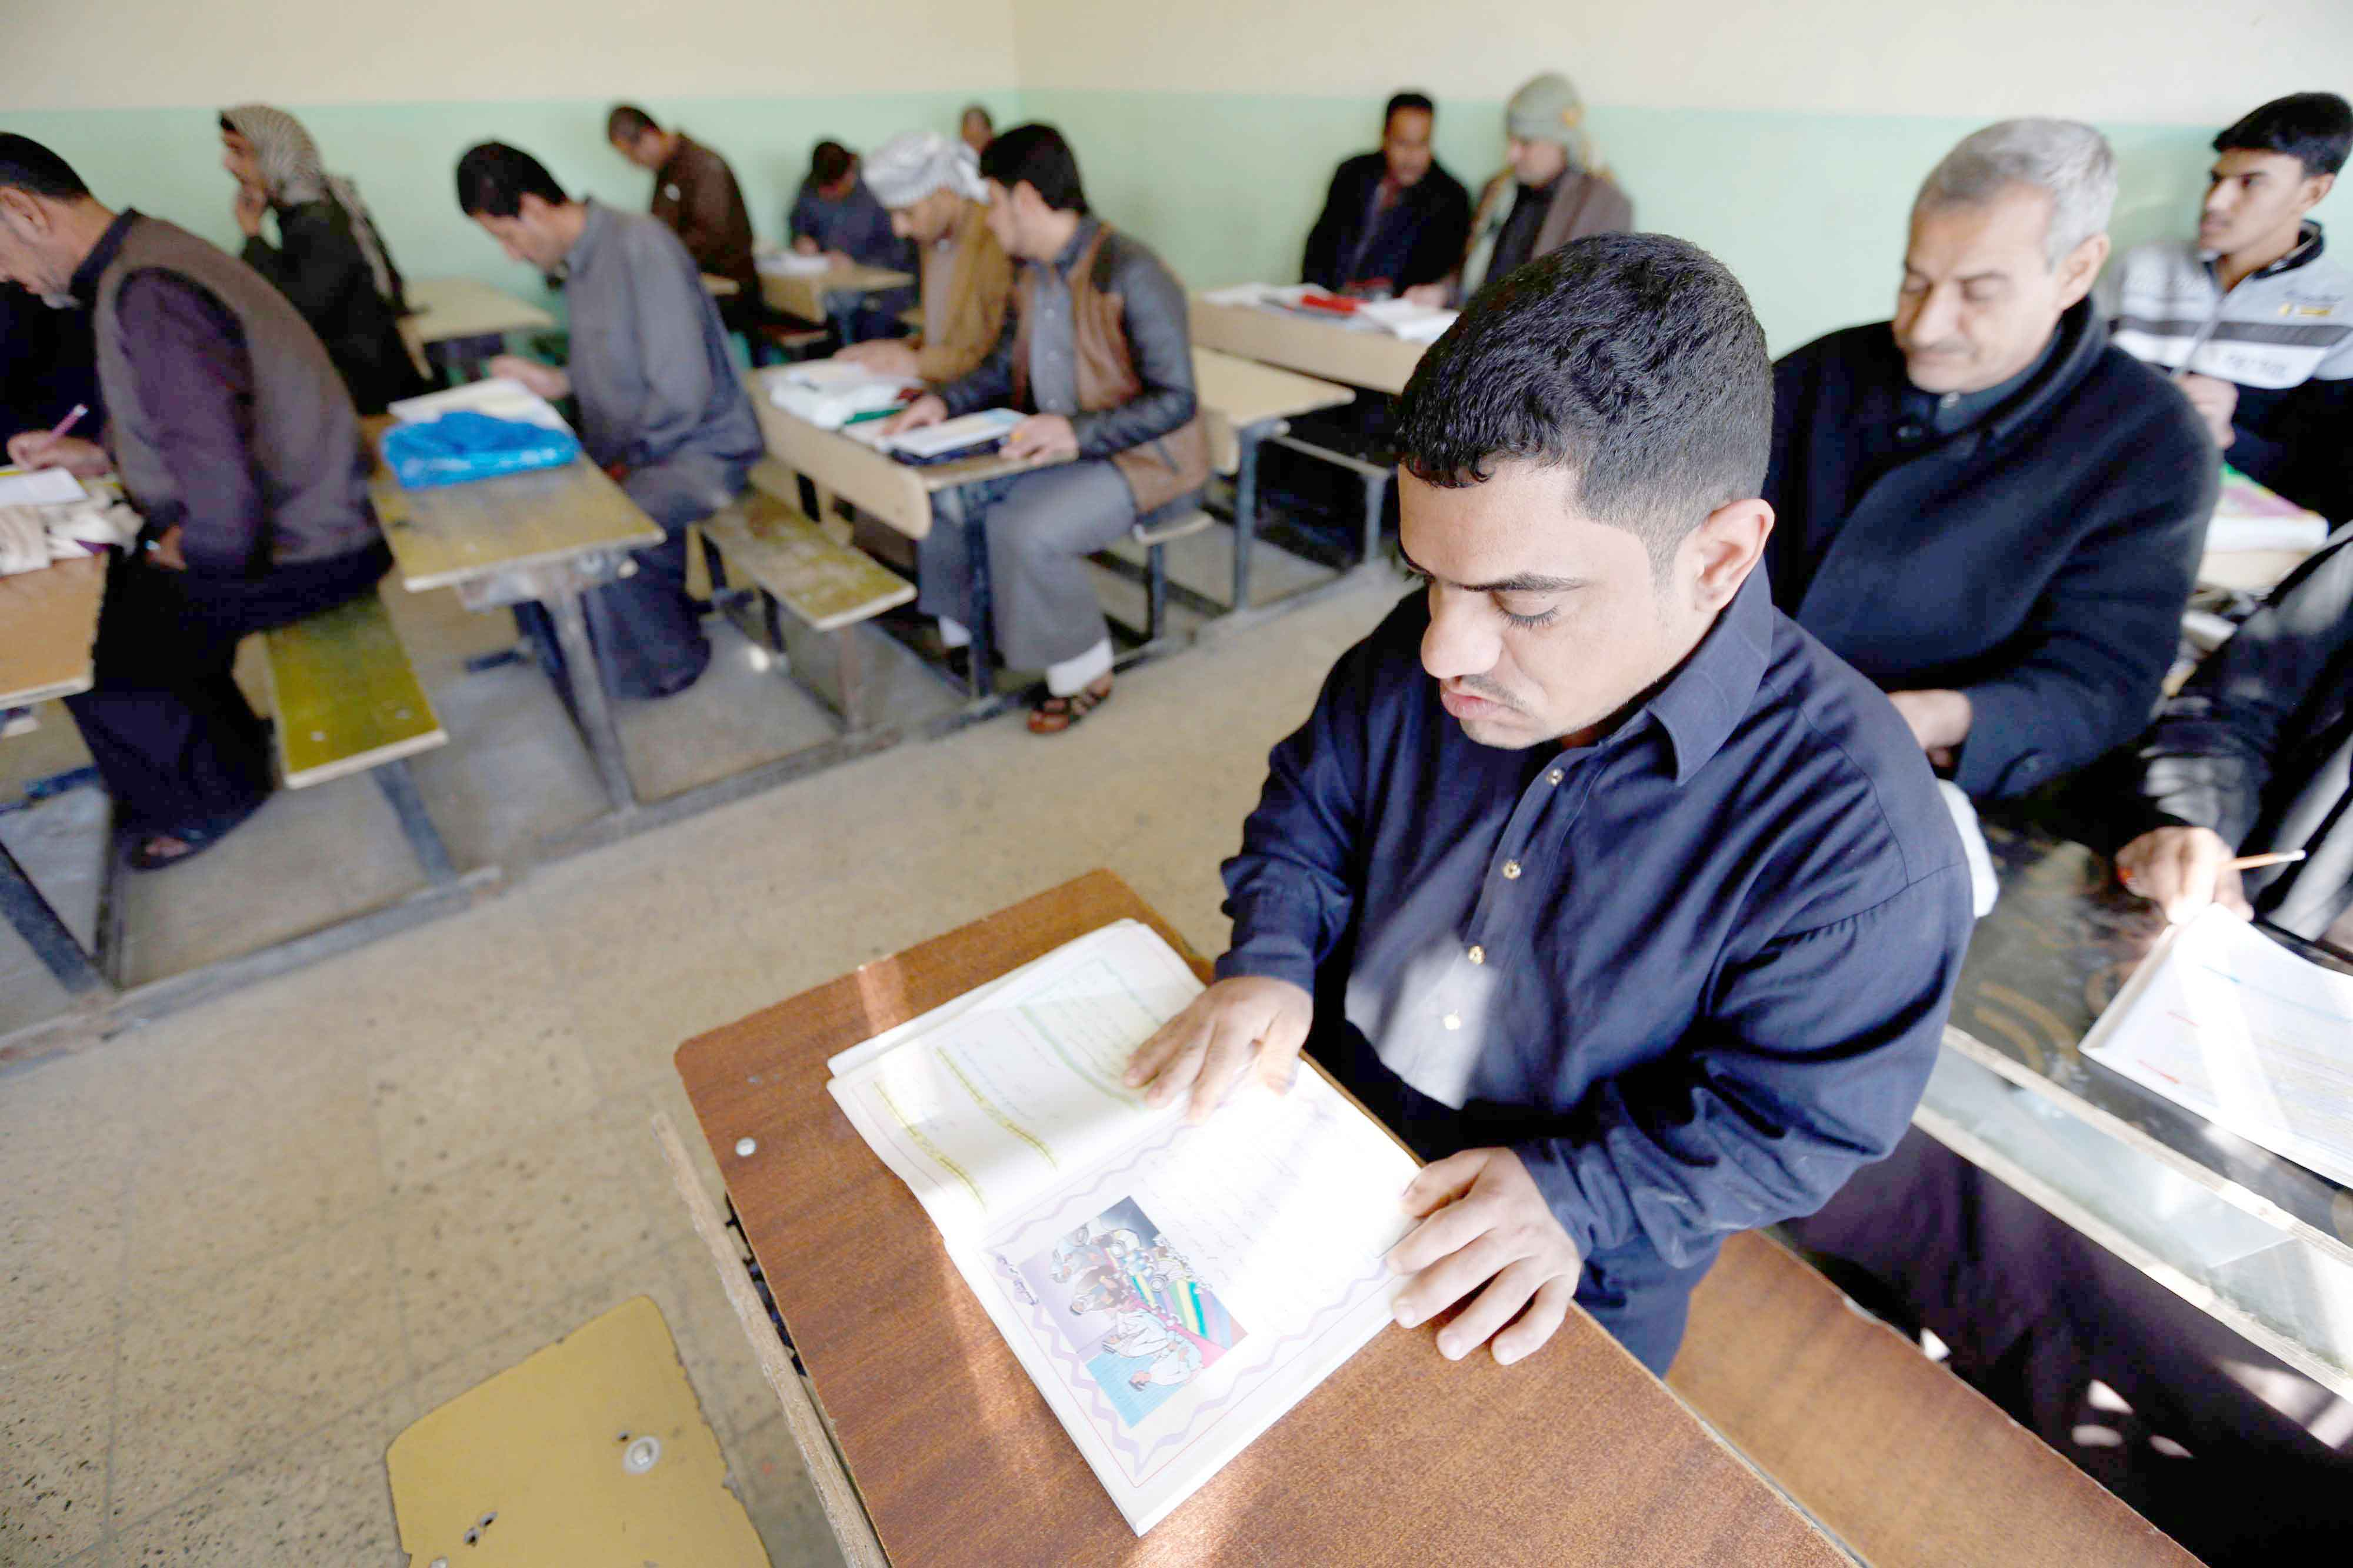 Catching up. Iraqi men take part in an Iraqi government's literacy programme for adults in the holy city of Najaf.(AFP)